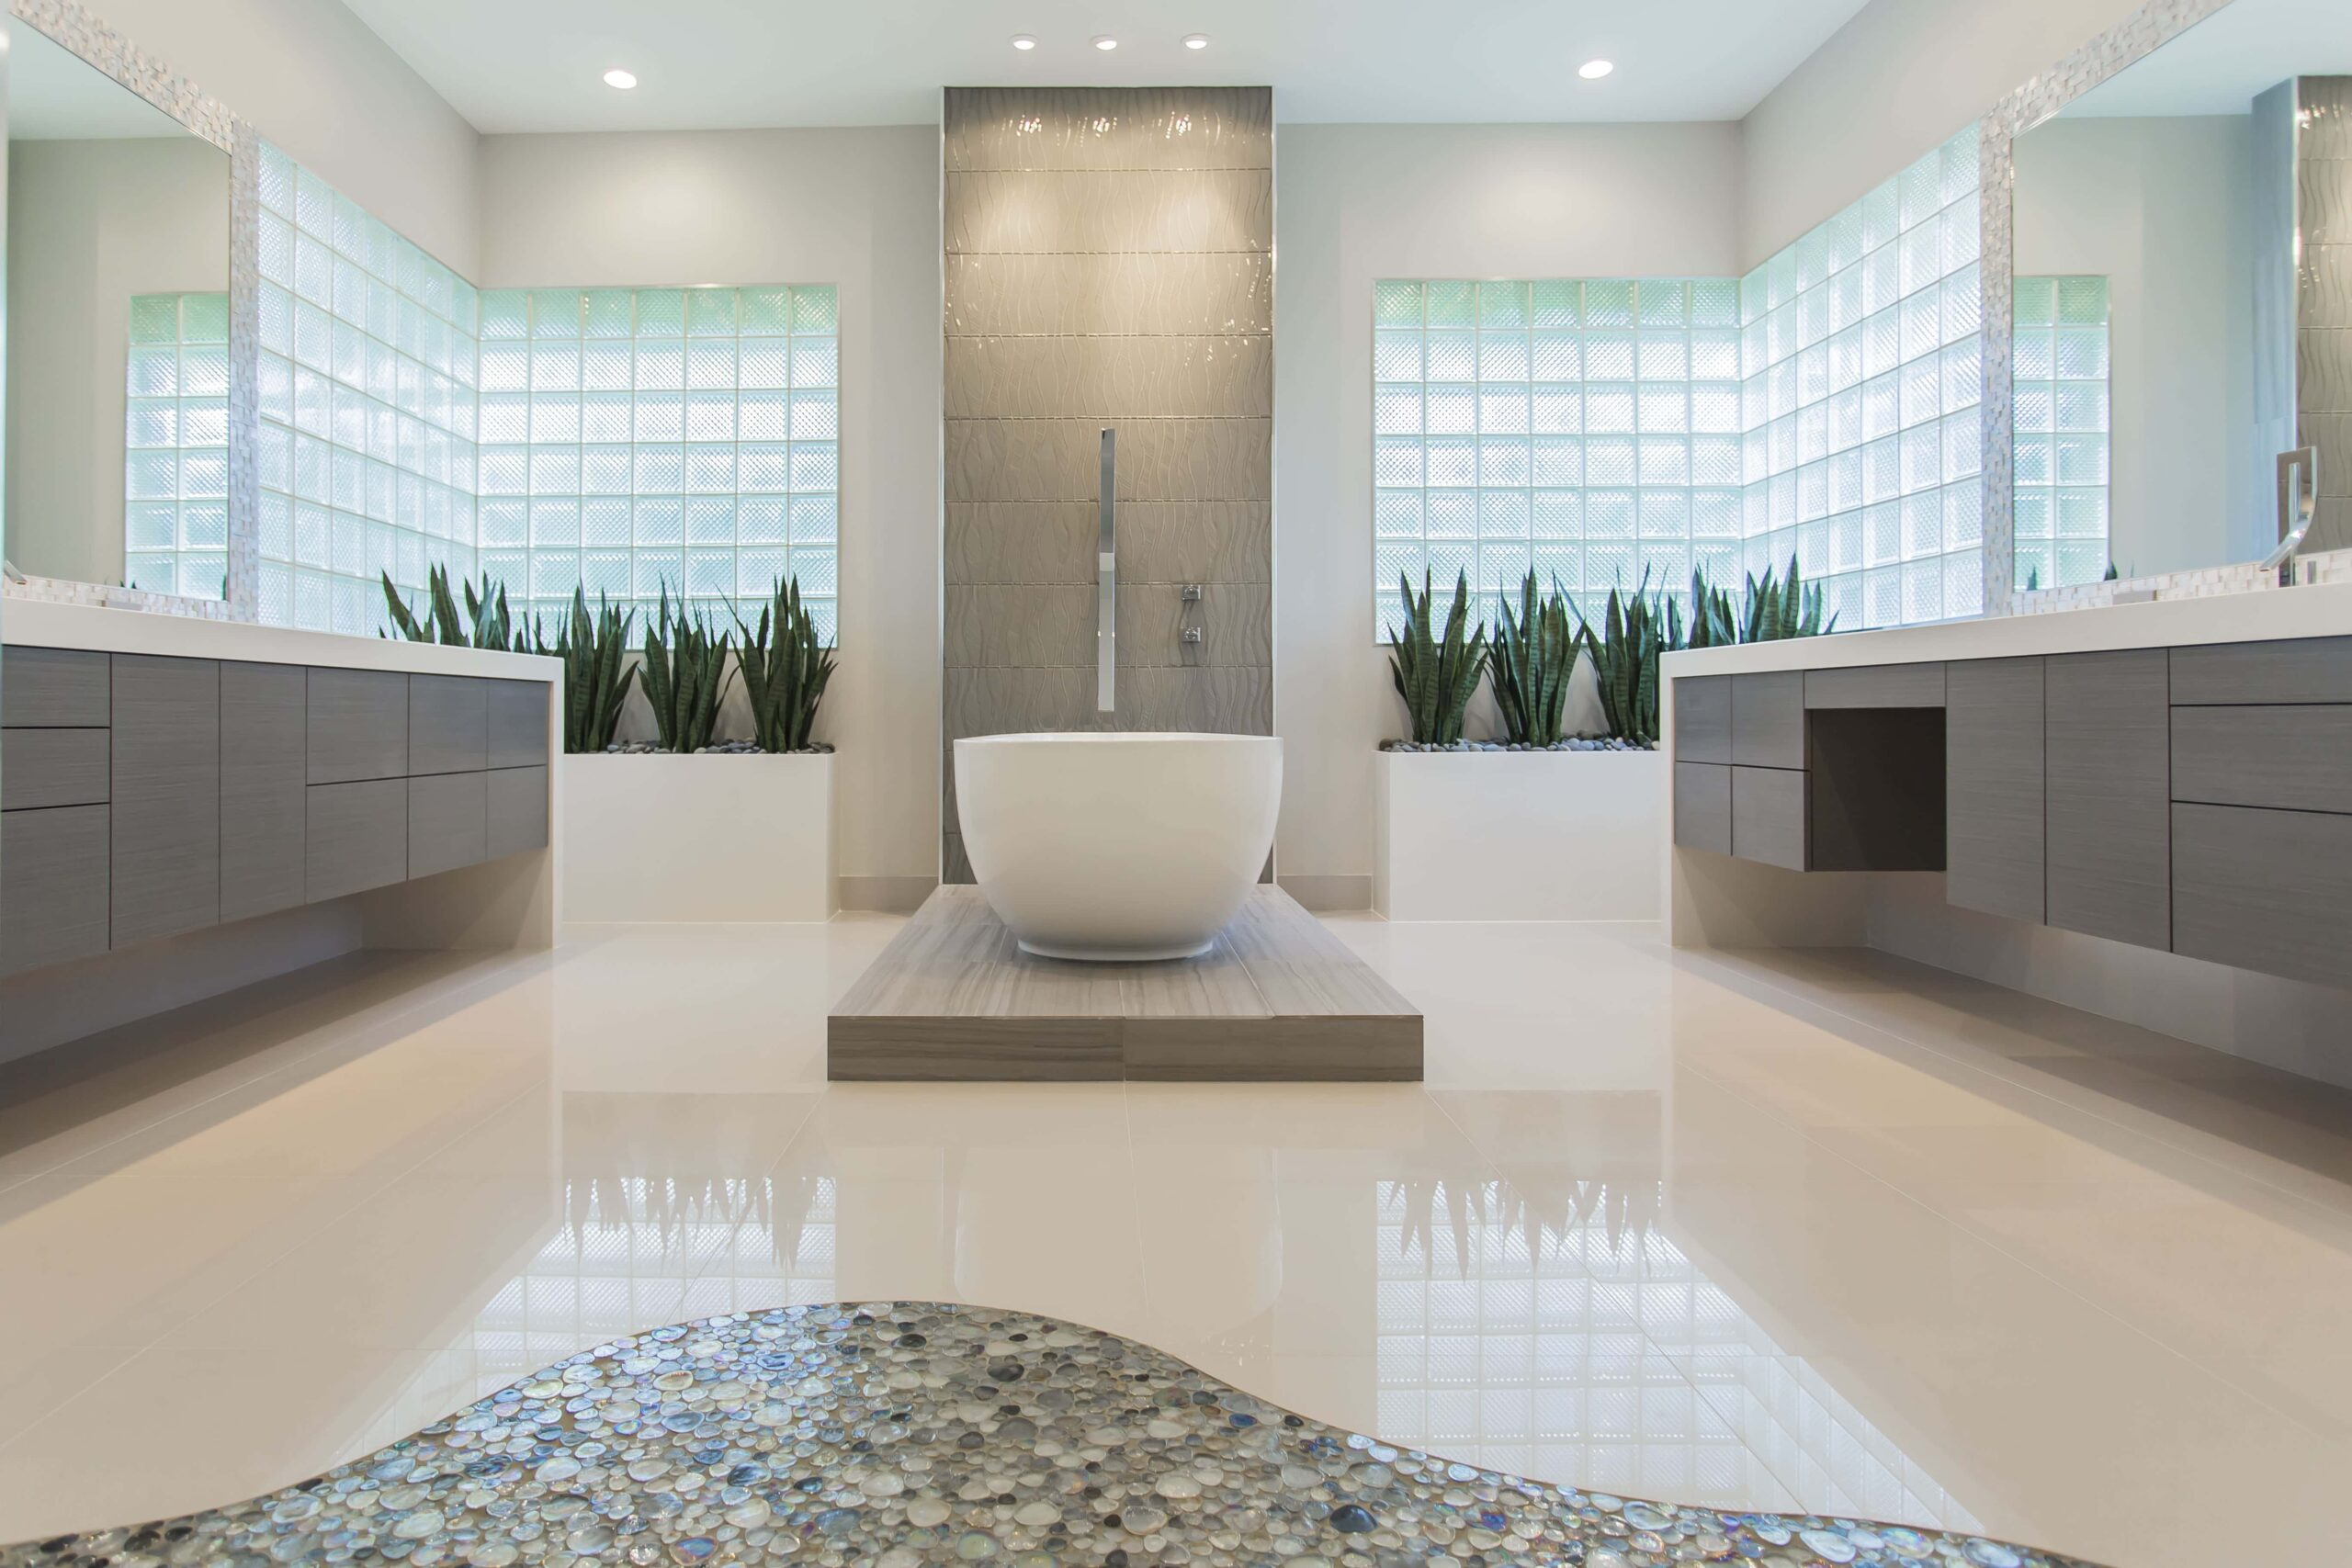 Bathroom Remodels For 2015 memorial modern master bath remodel | houston, tx | 2015